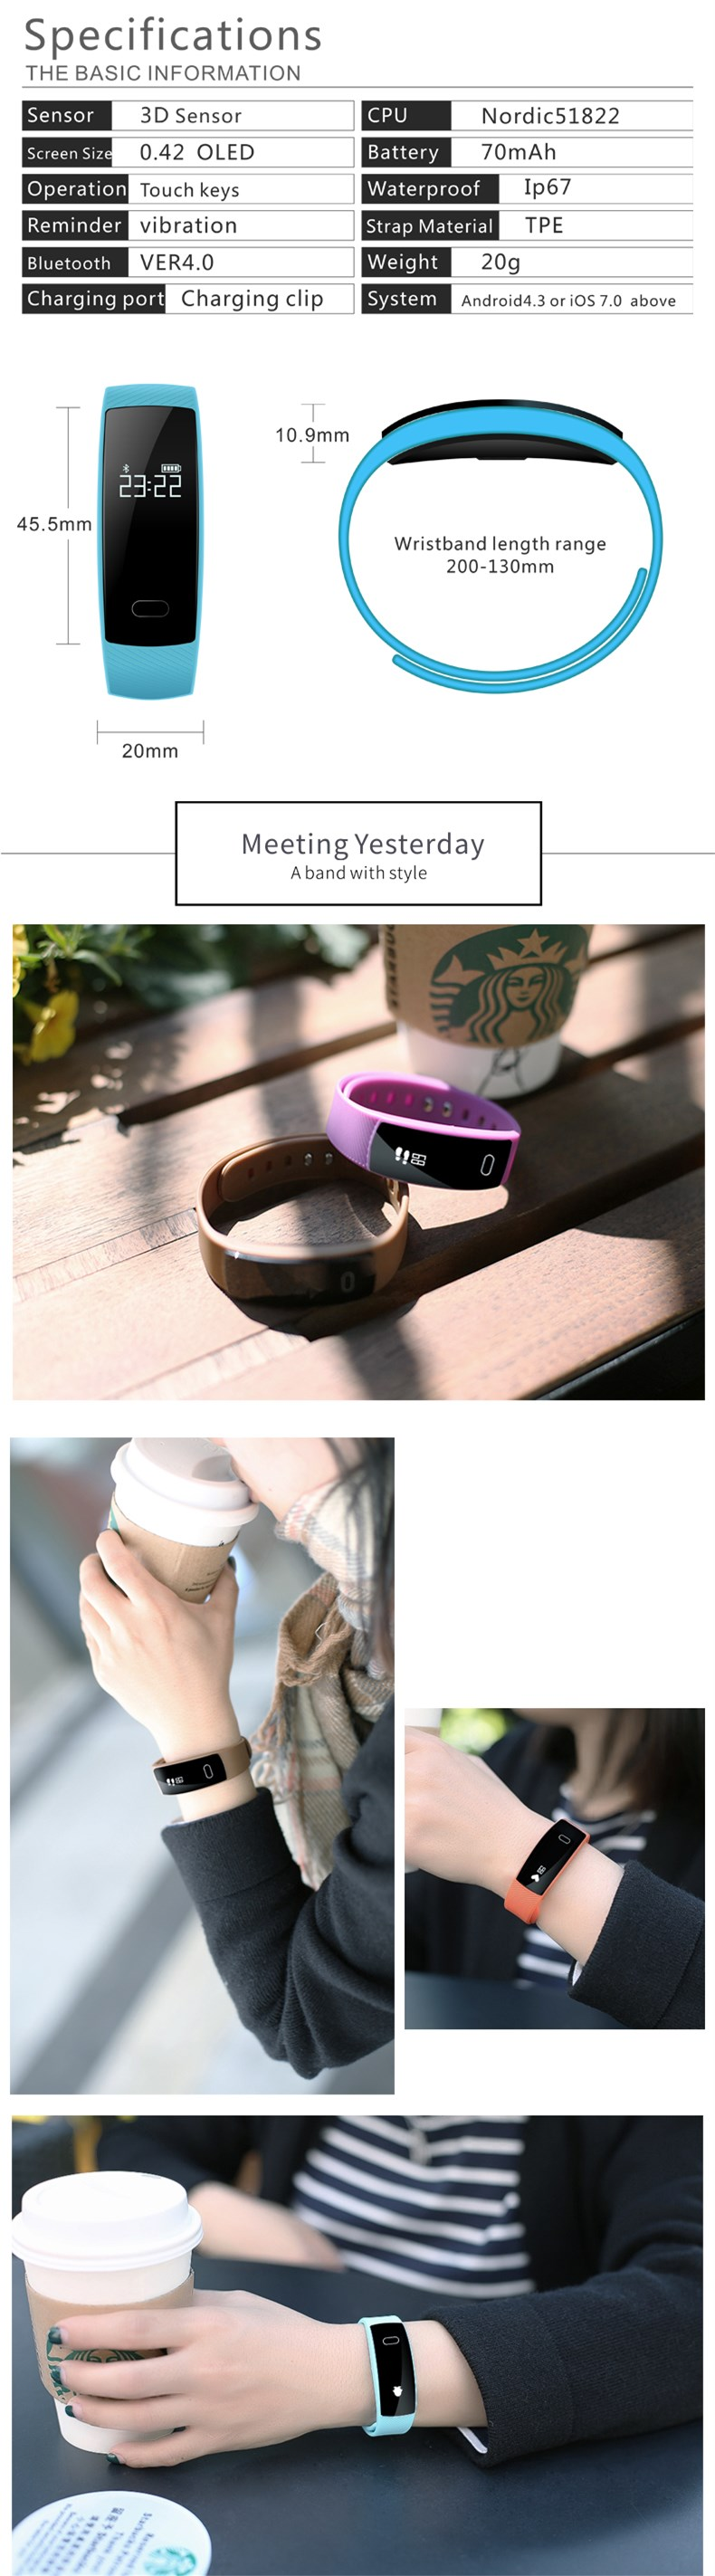 HUINIU QS80 Bluetooth Smartband Message Reminder Smart Band Blood Pressure Wristband Fitness Tracker Bracelet for IOS Android 5